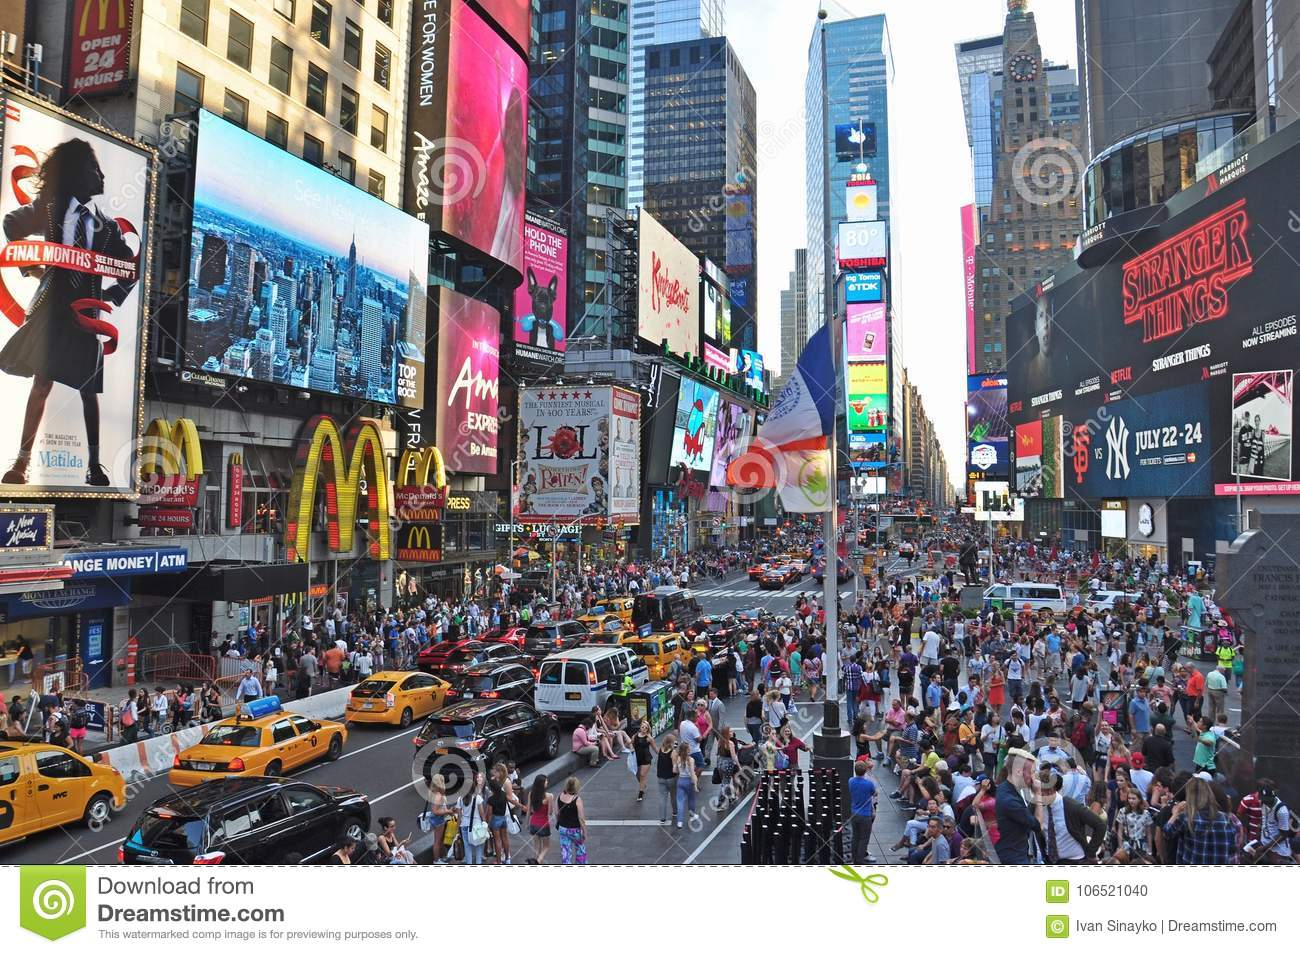 The worlds famous Times Square in New York City day time